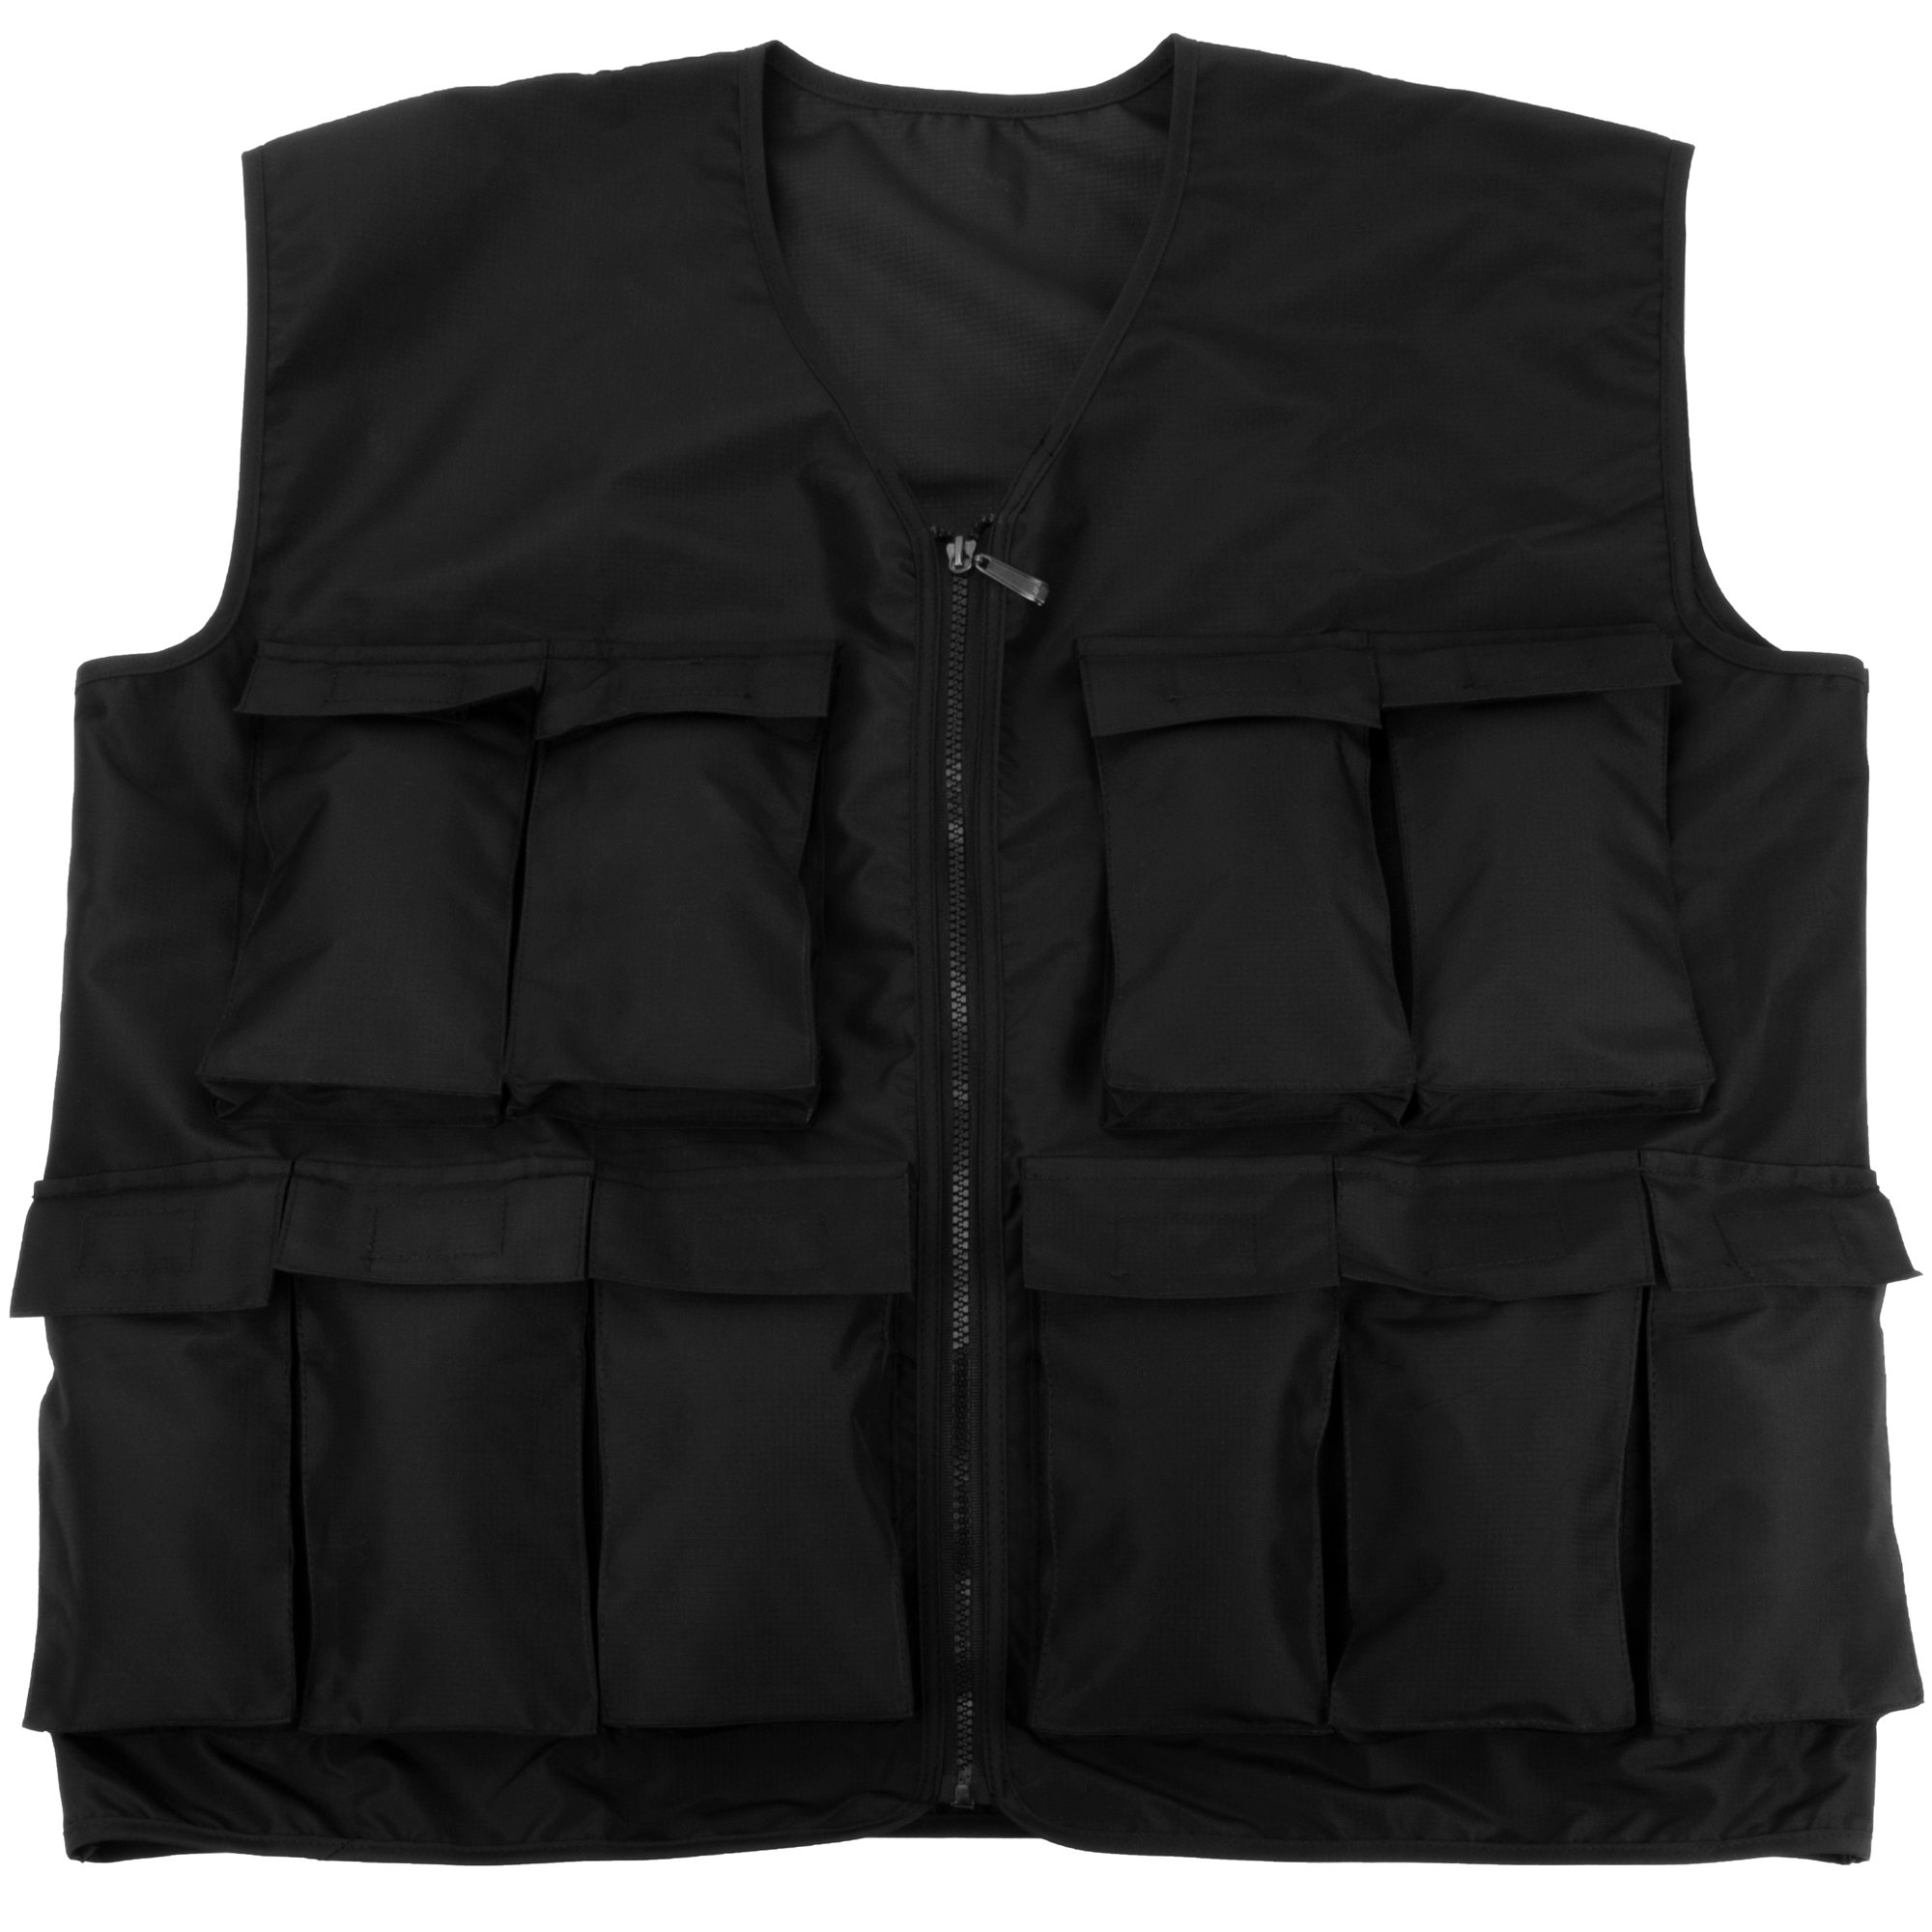 Crown Sporting Goods 7 kg (15 lbs) Endurance Weighted Vest - Adjustable Weight Jacket for Resistance Training with 15 Additional 1 lb. Weights by Crown Sporting Goods